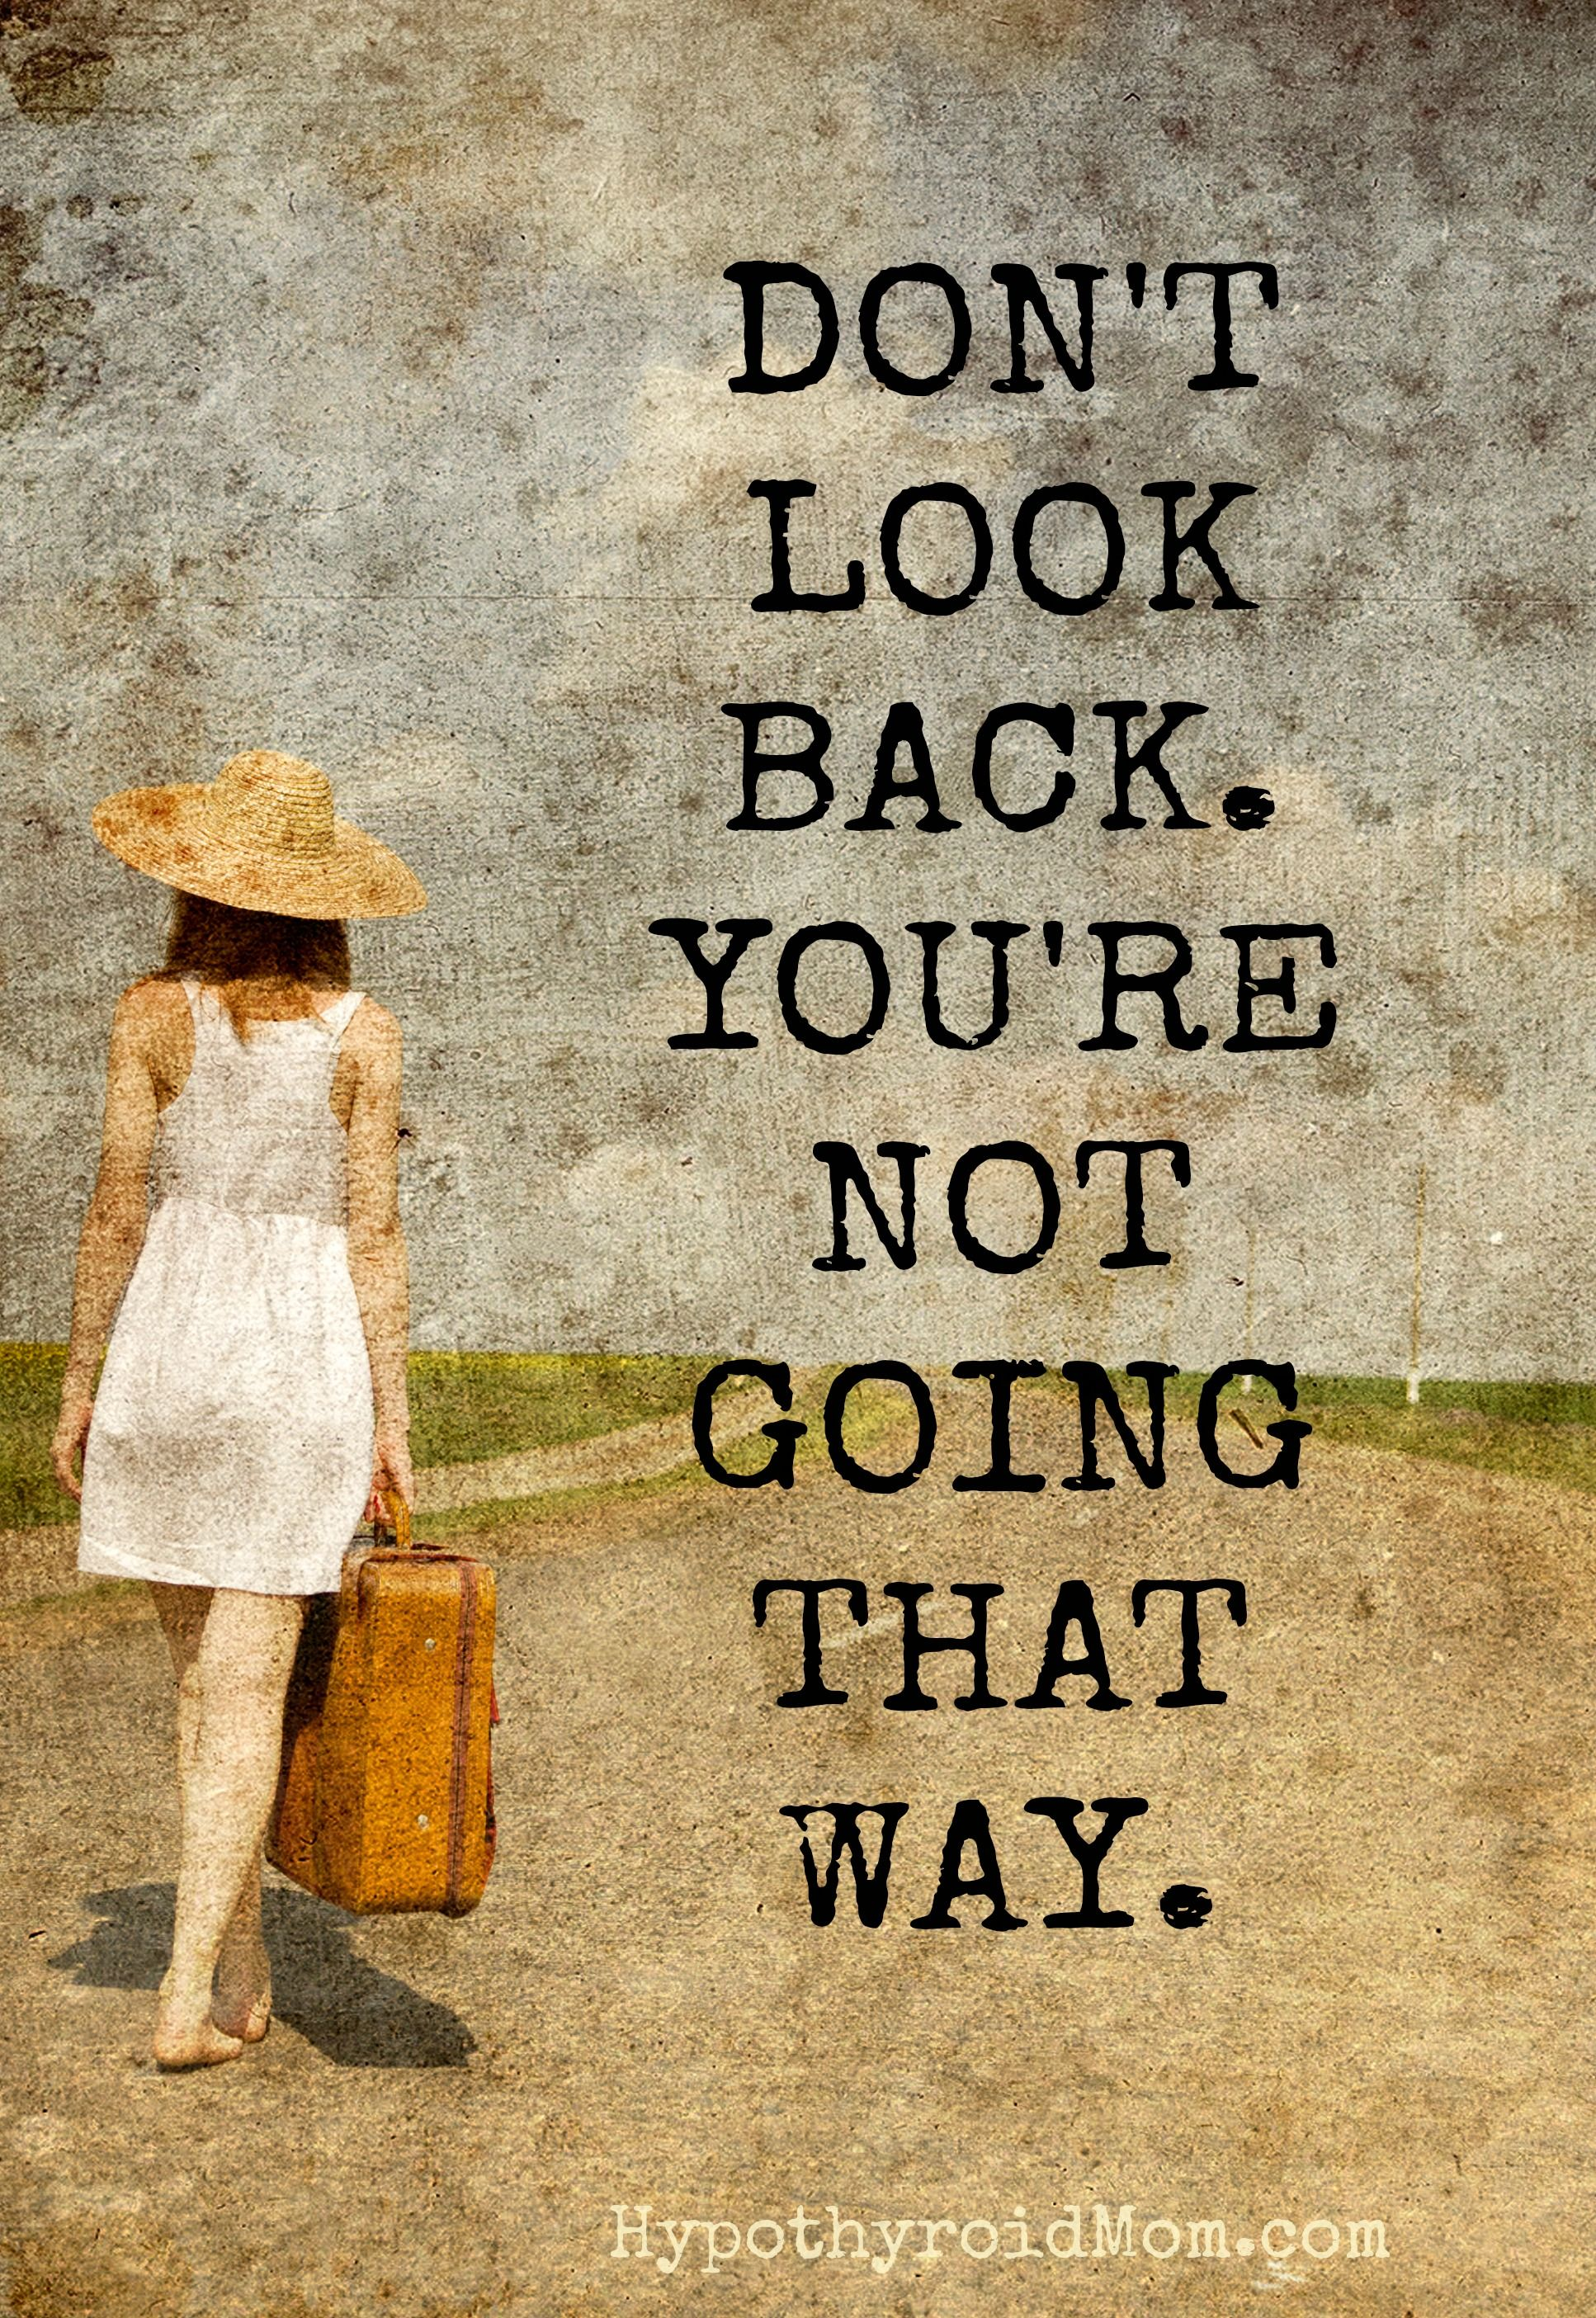 Dont Look Back Youre Not Going That Way Hypothyroidmomcom